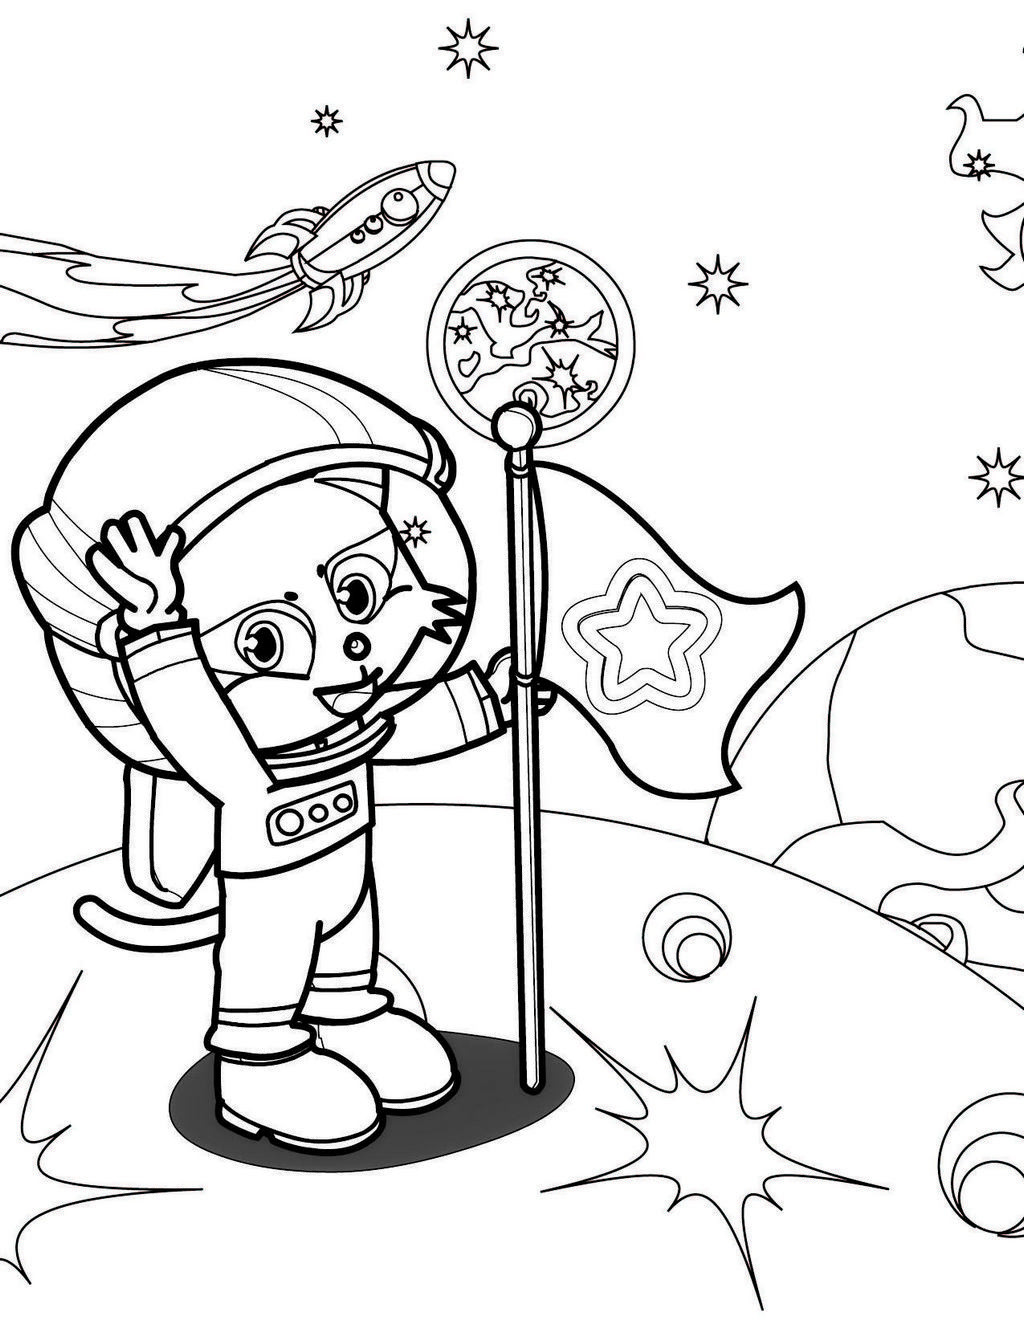 Best ideas about Coloring Pages For Girls 12 And Up . Save or Pin astronaut on the moon coloring picture for boys and girls Now.